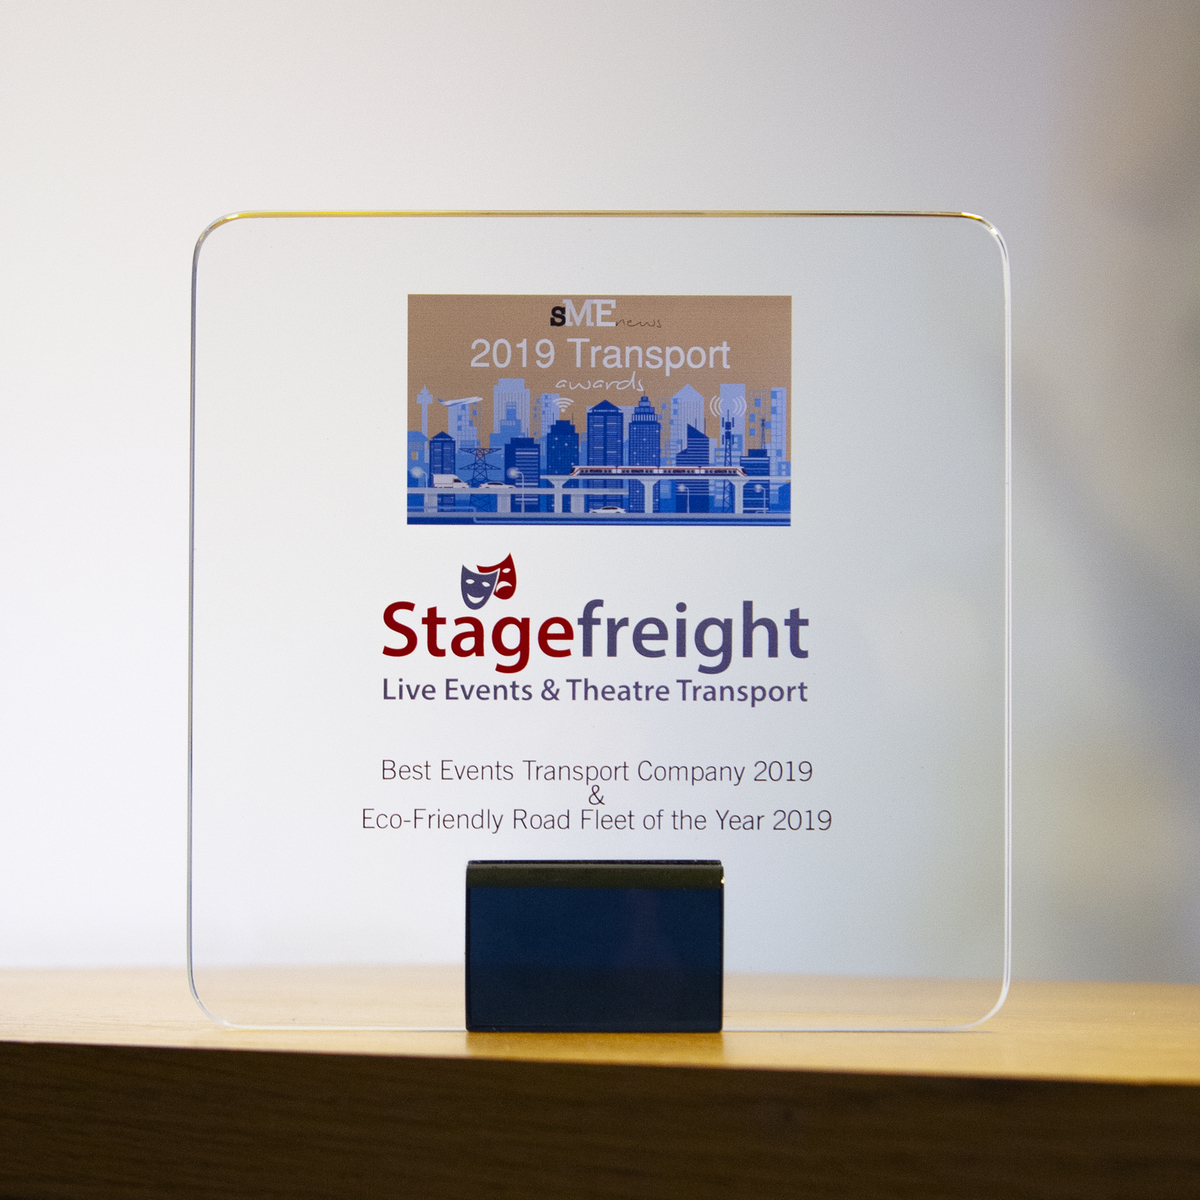 stagefreight award 2019 SME News